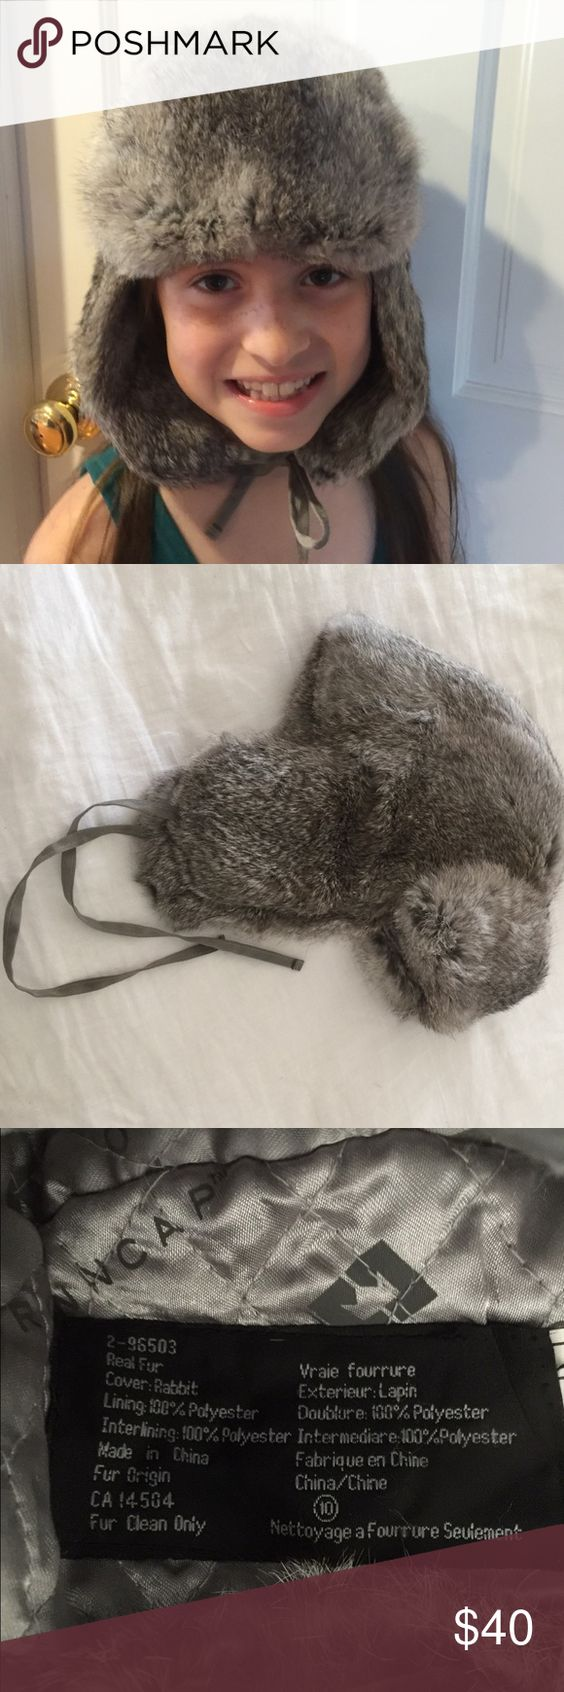 Real rabbit fur winter hat. Beautiful grey rabbit fur winter hat. Like new hardly worn. Very versatile, can be worn by a young girl, boy or woman with a smaller head. Purchased in Utah 3 years ago. Crowncap Accessories Hats